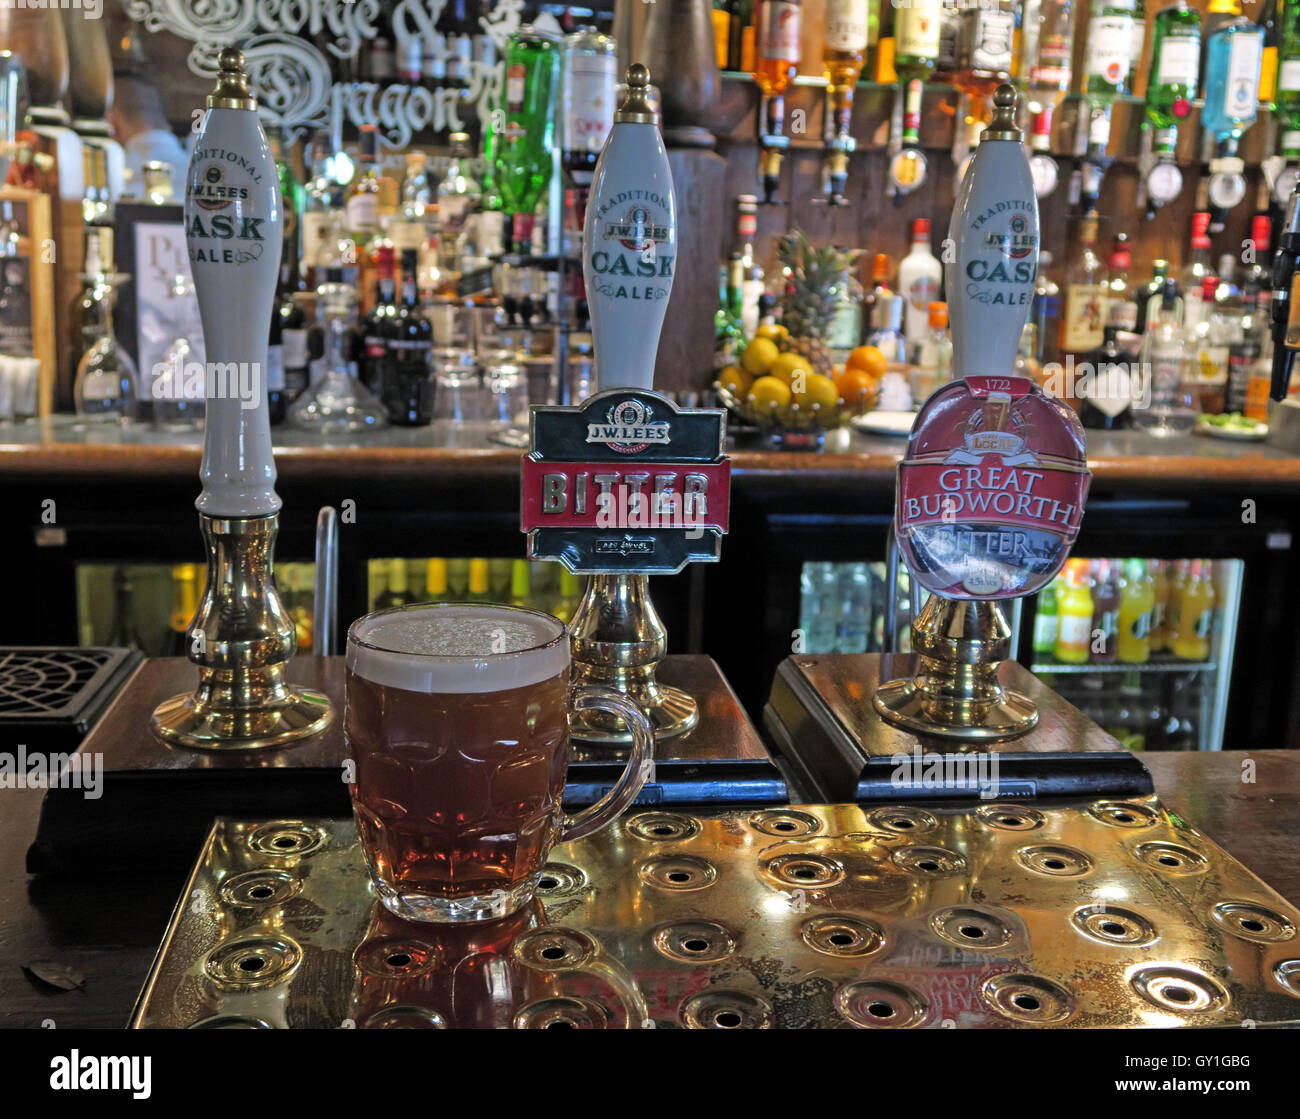 Traditional Pint of bitter on the bar, at the George & Dragon pub, Great Budworth Village, Cheshire, England - Stock Image